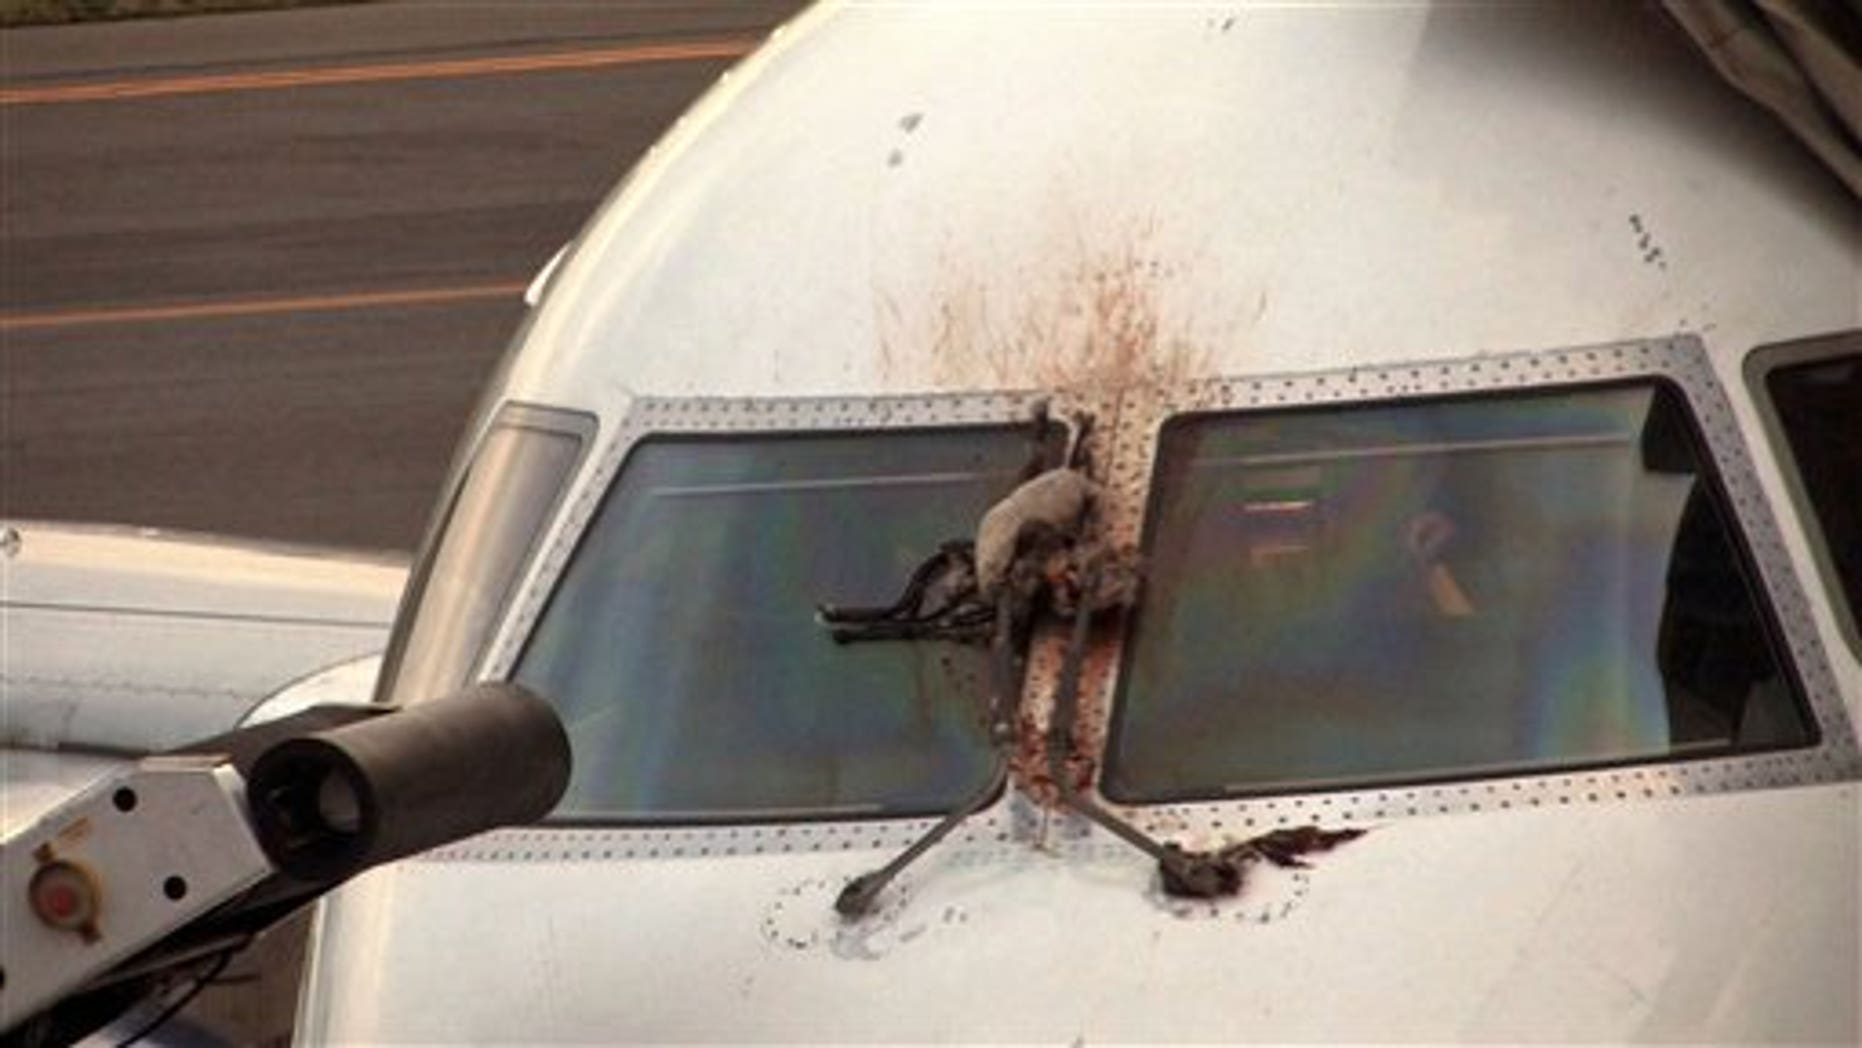 April 24, 2012: A Canada goose is stuck on the windshield of a JetBlue plane that made an emergency landing at the Westchester County Airport in Purchase, N.Y.